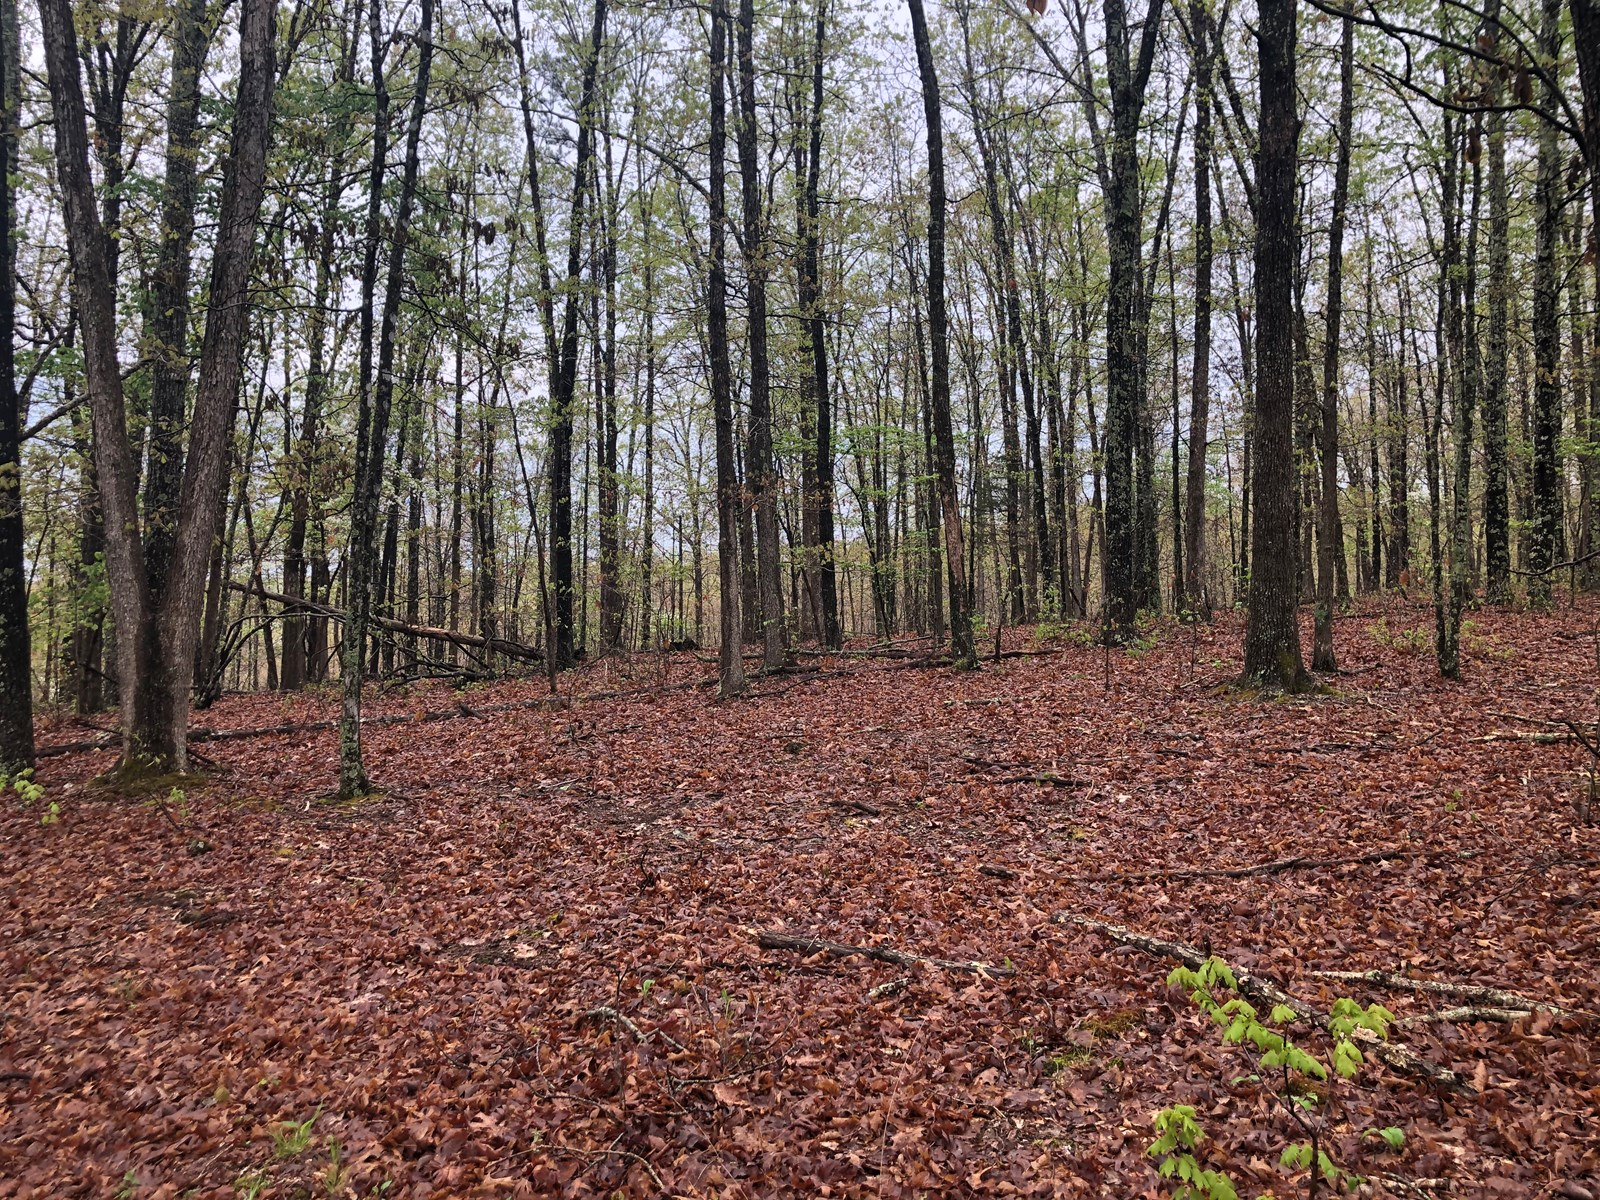 5 Acres on 19 S, perfect for a hunting cabin or camping!